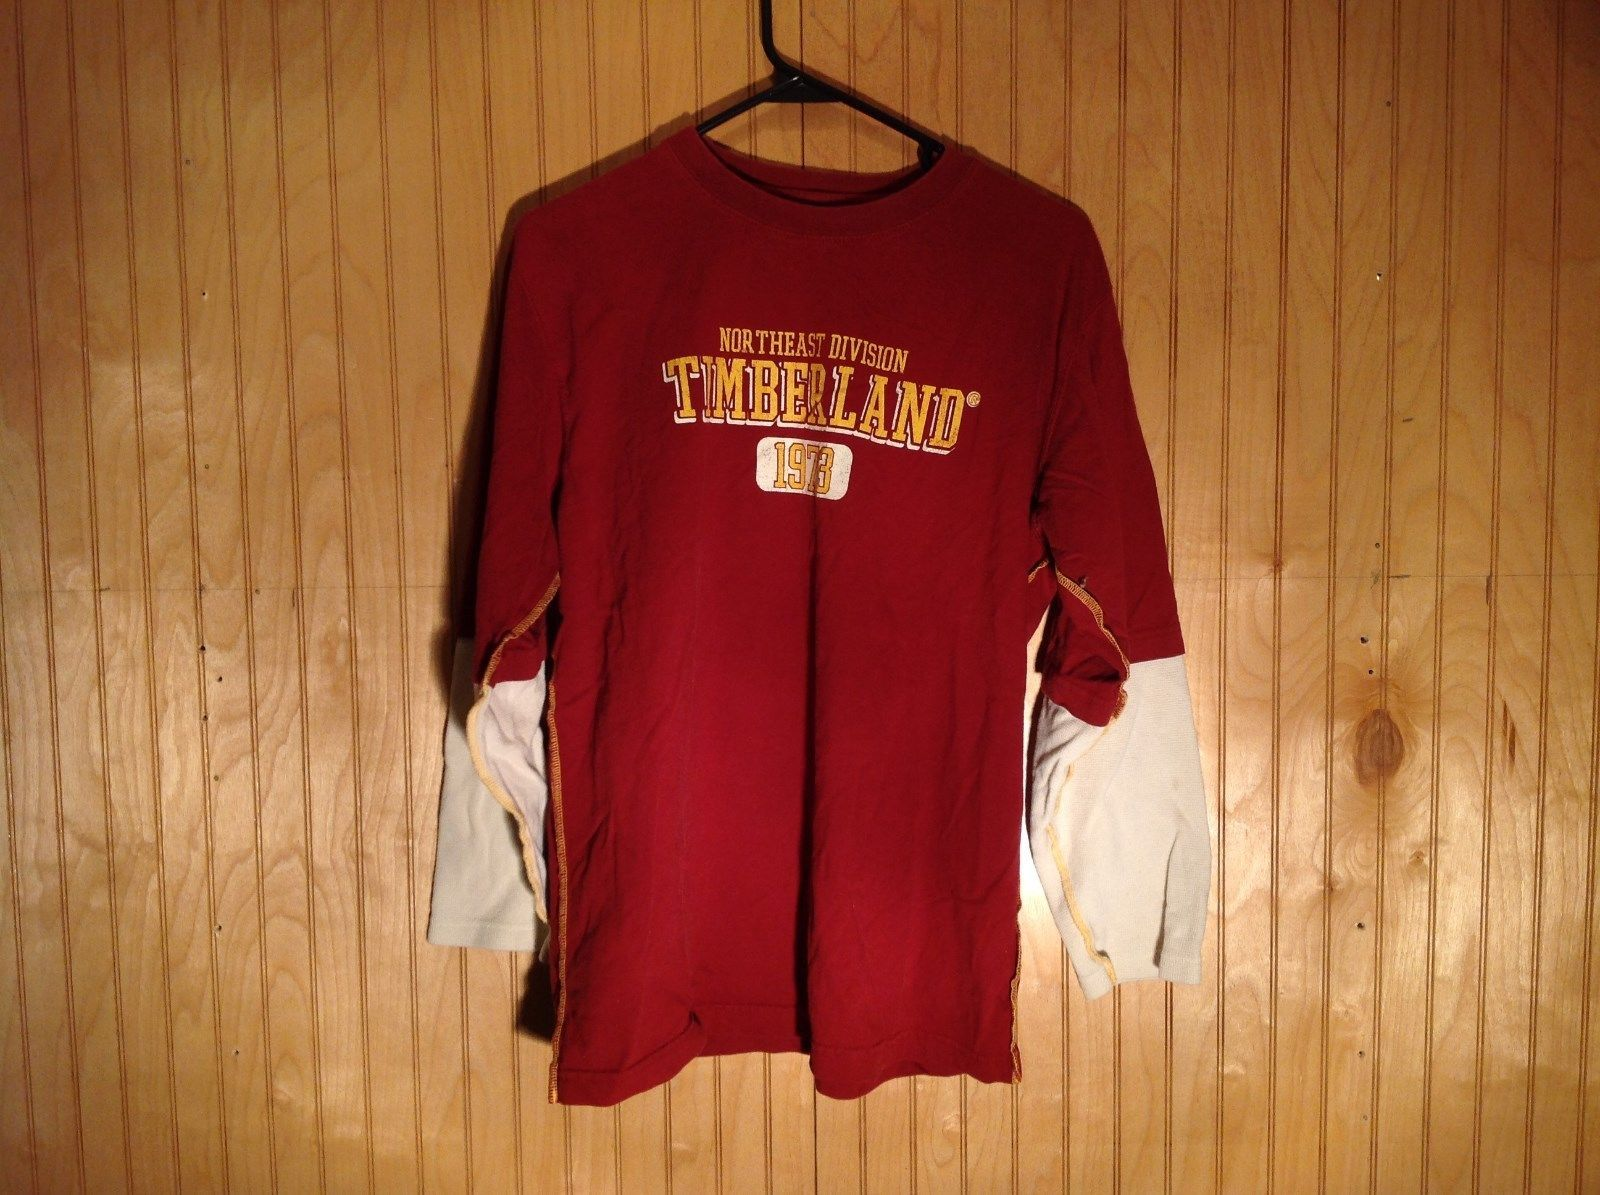 Timberland Long Sleeve Deep Red Shirt with White Sleeves Measurements Below